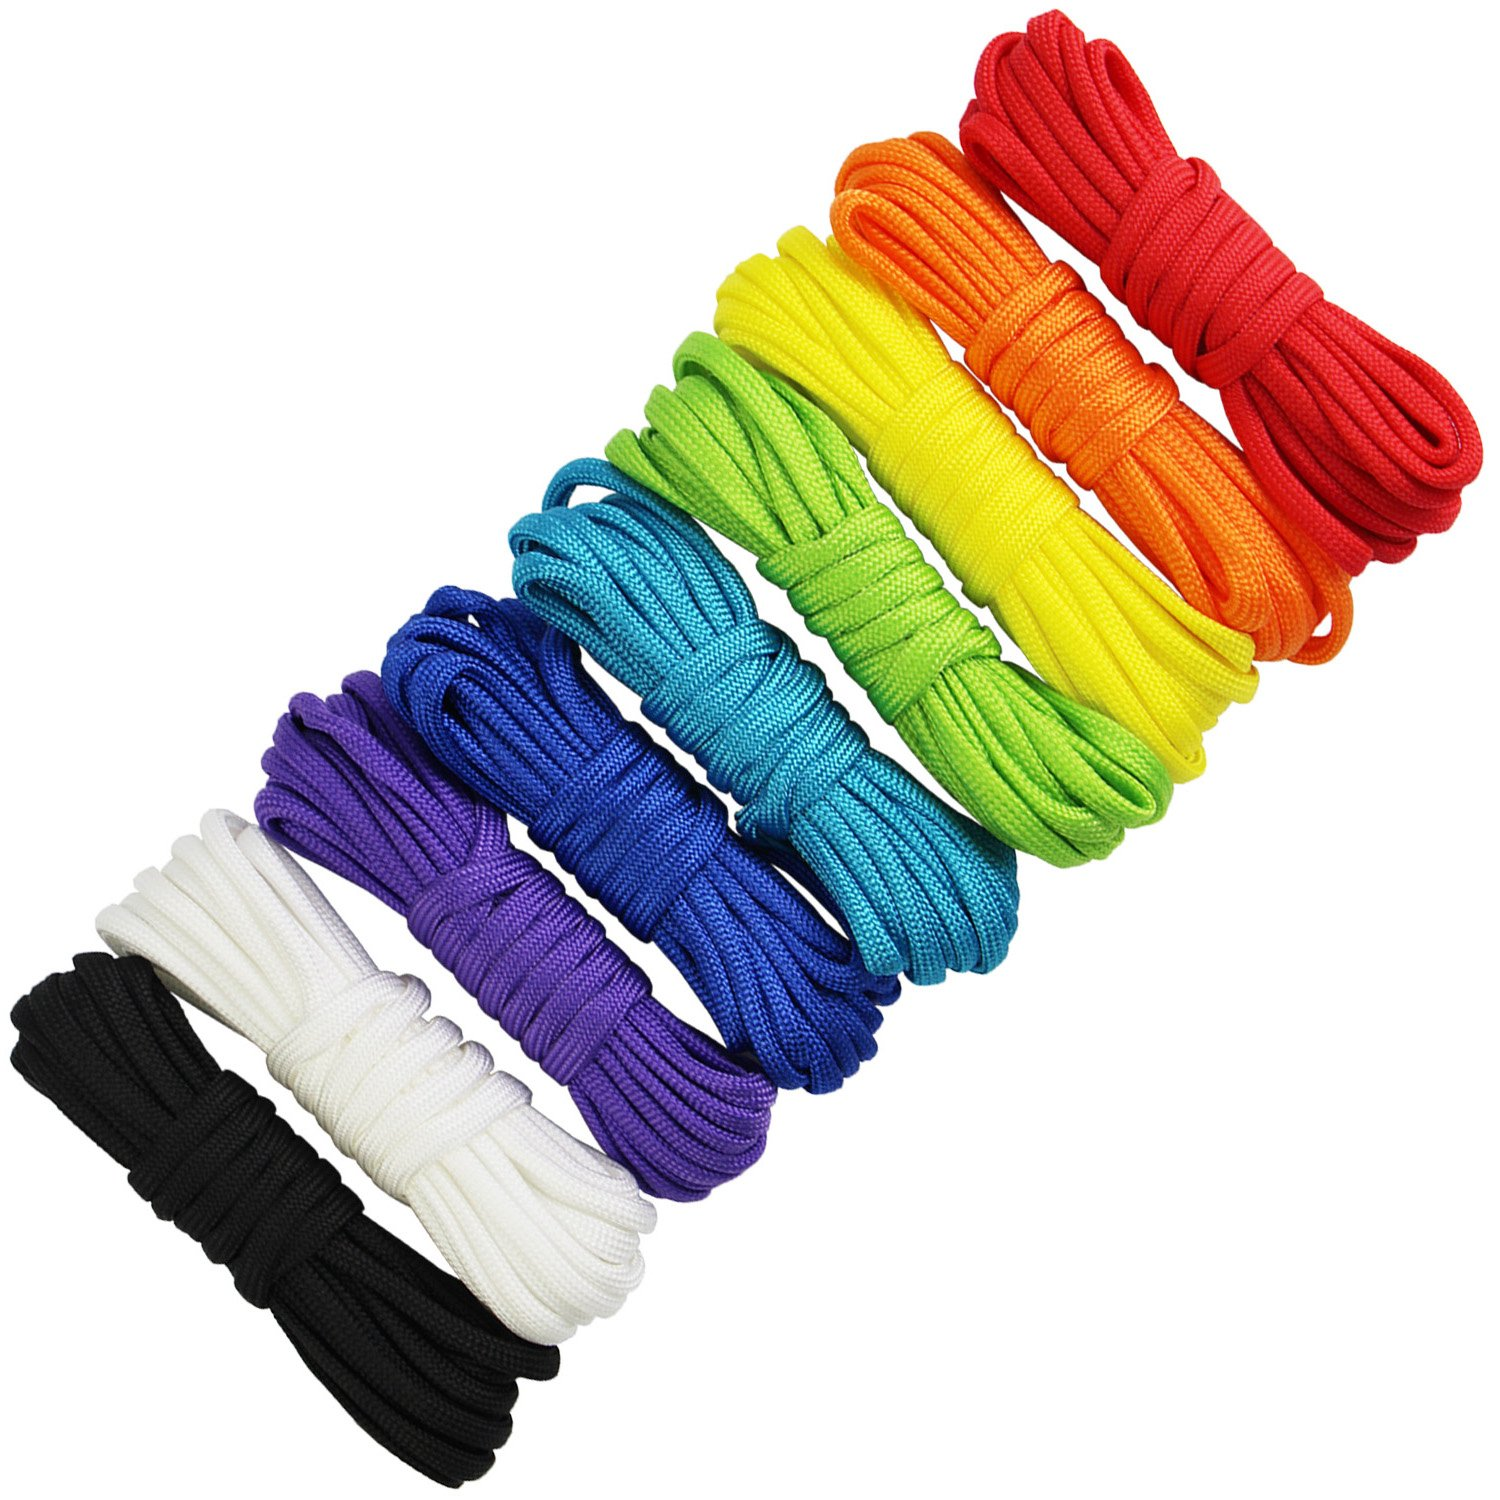 9 Colours x 10 ft Paracord Bracelet Rope Rainbow Color Black and White Parachute 7 Strand Nylon Cord Survival Rope Parachute Cord for Camping Hiking Travelling Outdoor & Home Uses Braided Bracelet Keychain Lanyard QINGKONG